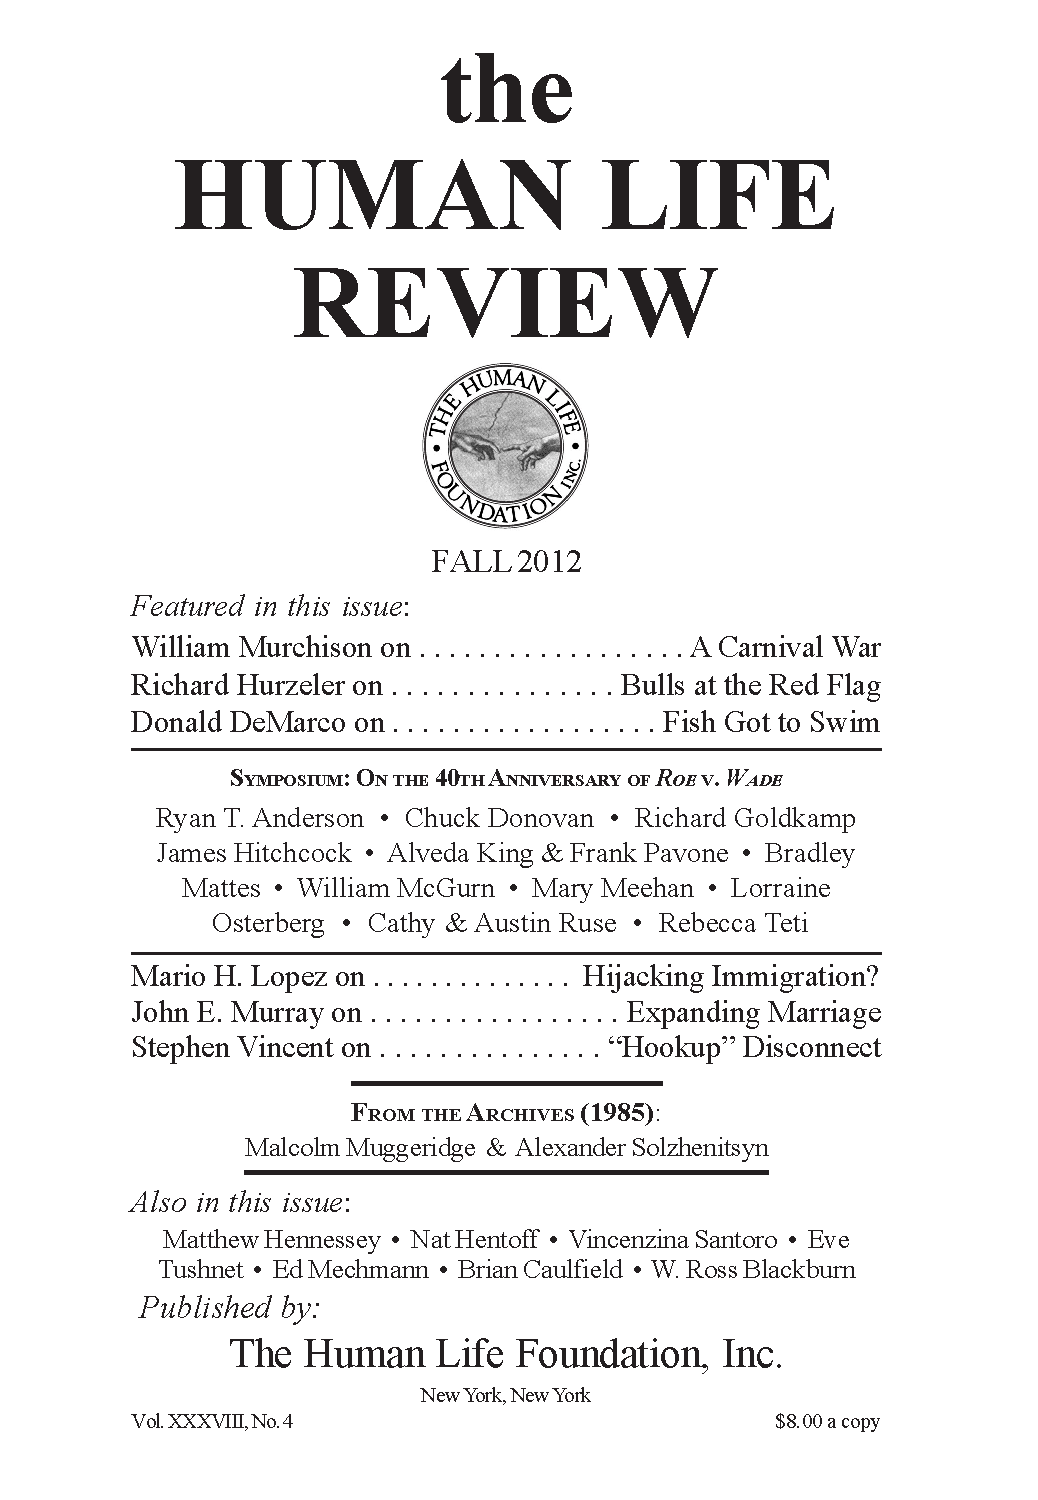 The Human Life Review Fall 2012 - The Human Life Review